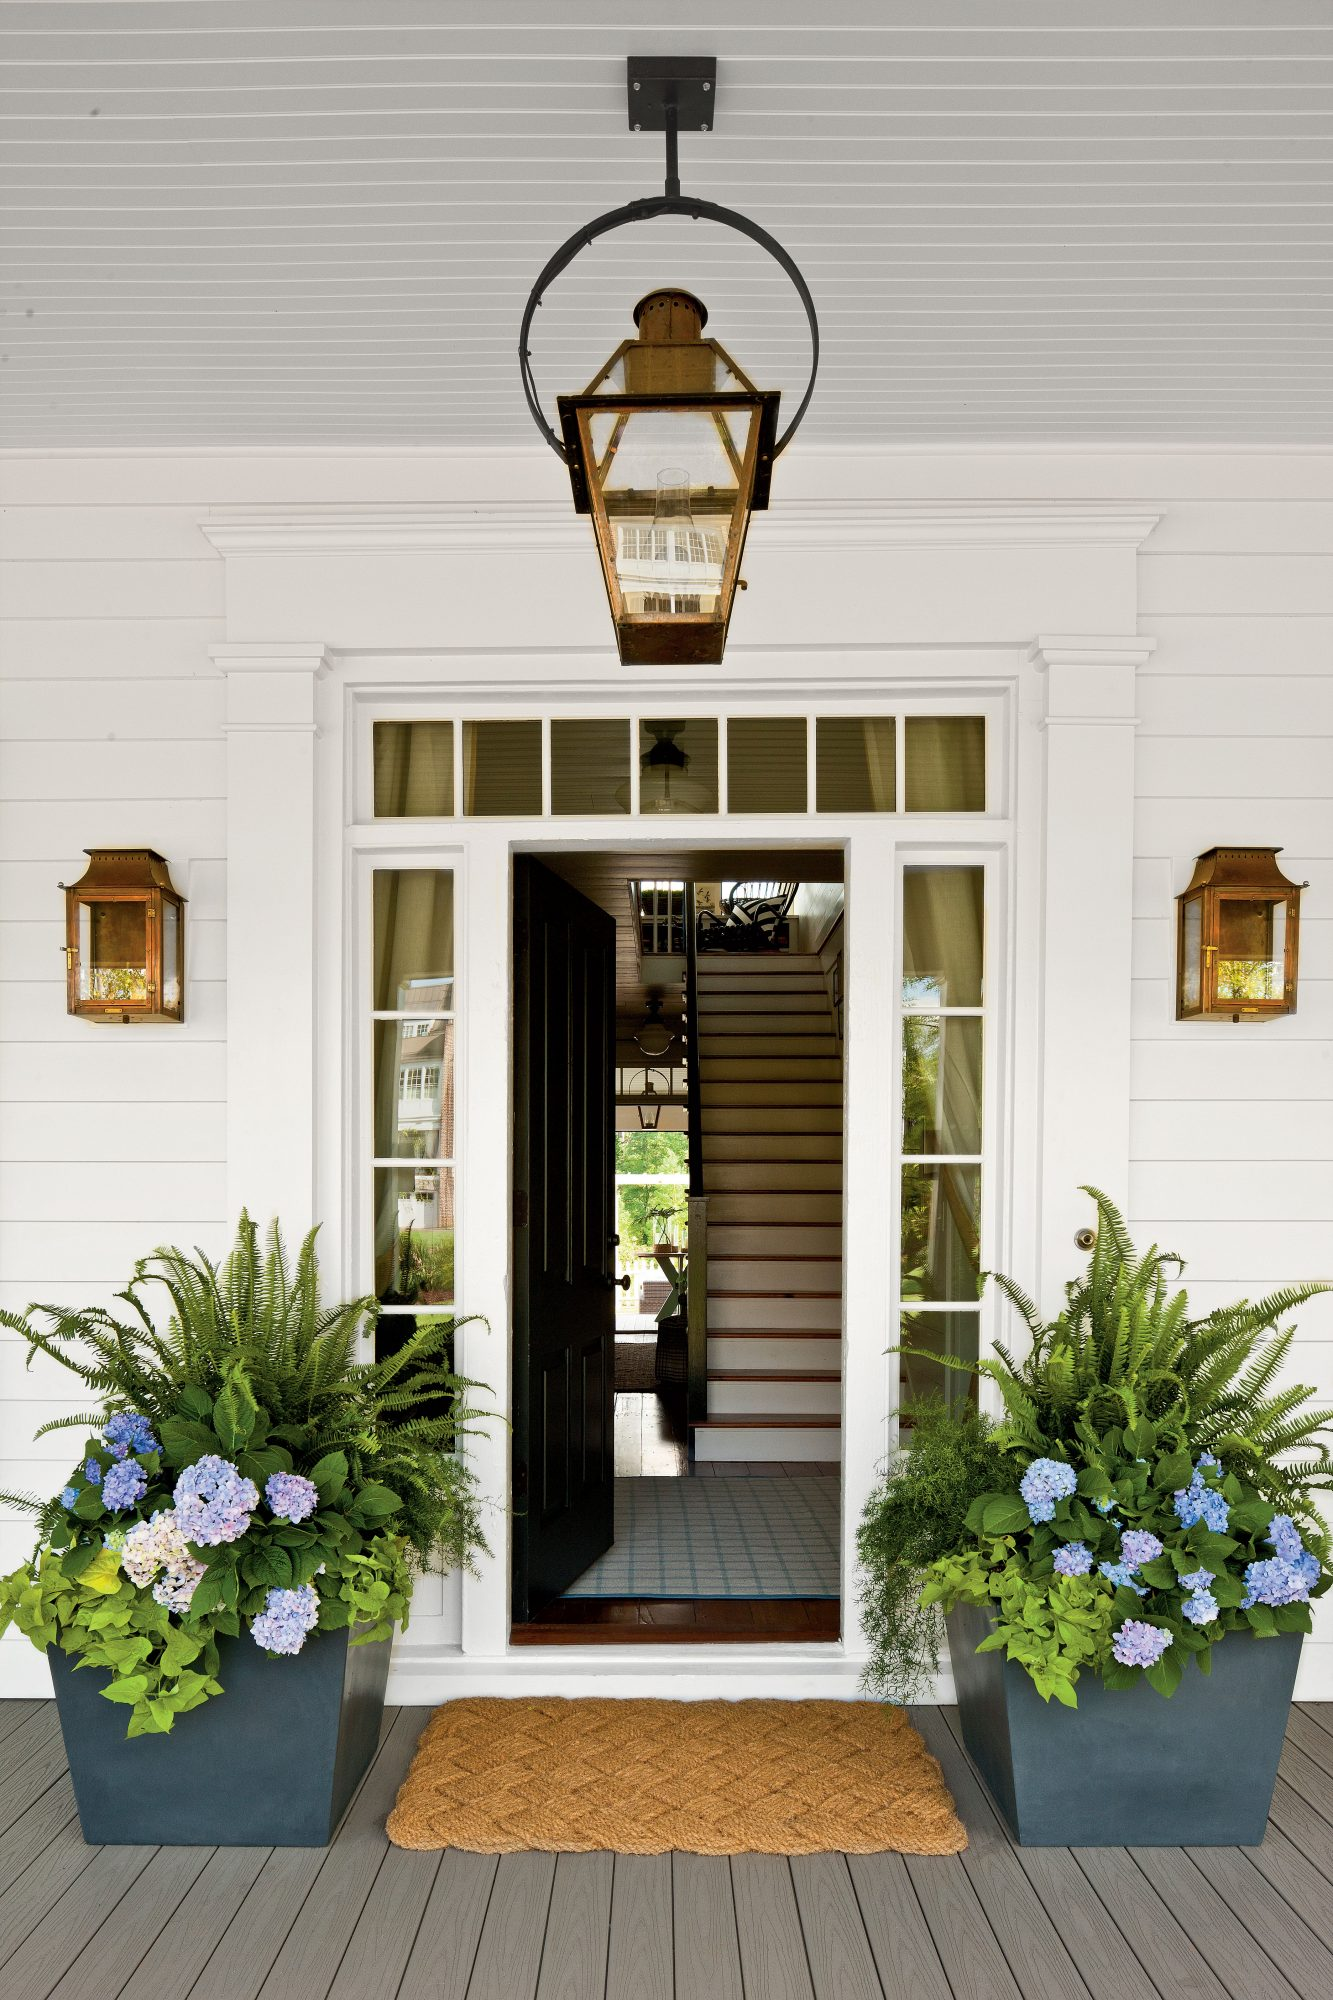 Potted Hydrangeas with Ferns Flanking Front Door